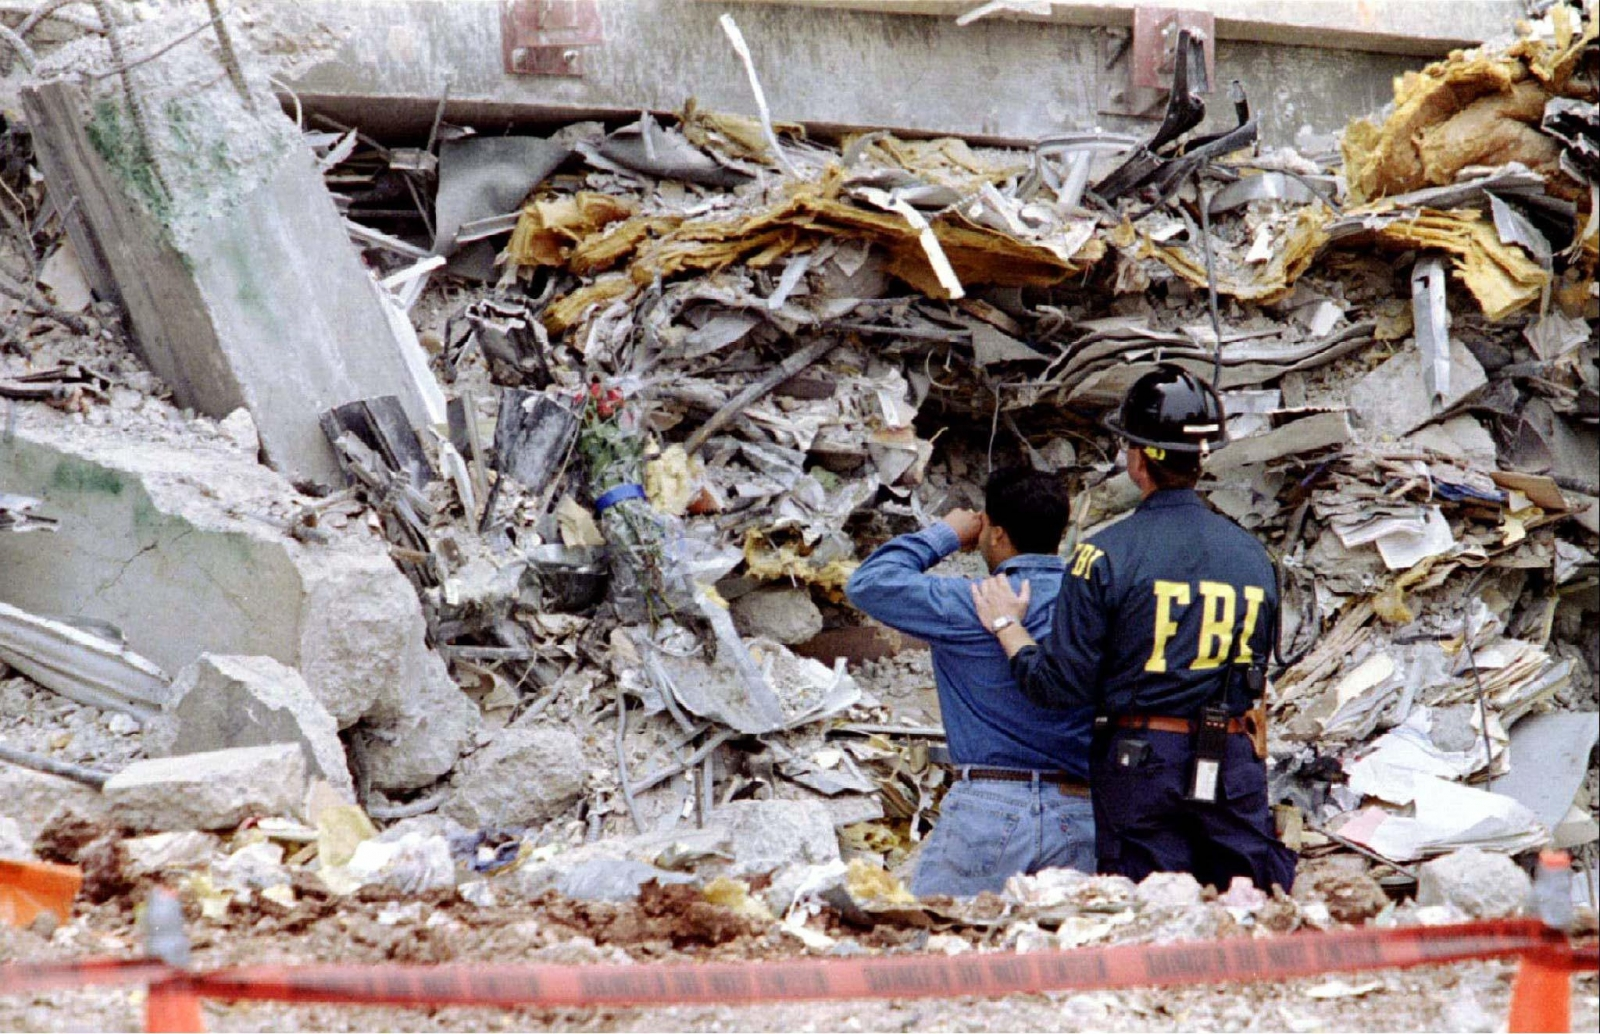 the oklahoma city bombing in april 19 1995 In this april 19, 1995 file photo, people injured in the car bomb blast at the alfred p murrah federal building in downtown oklahoma city, okla gather near the explosion site.